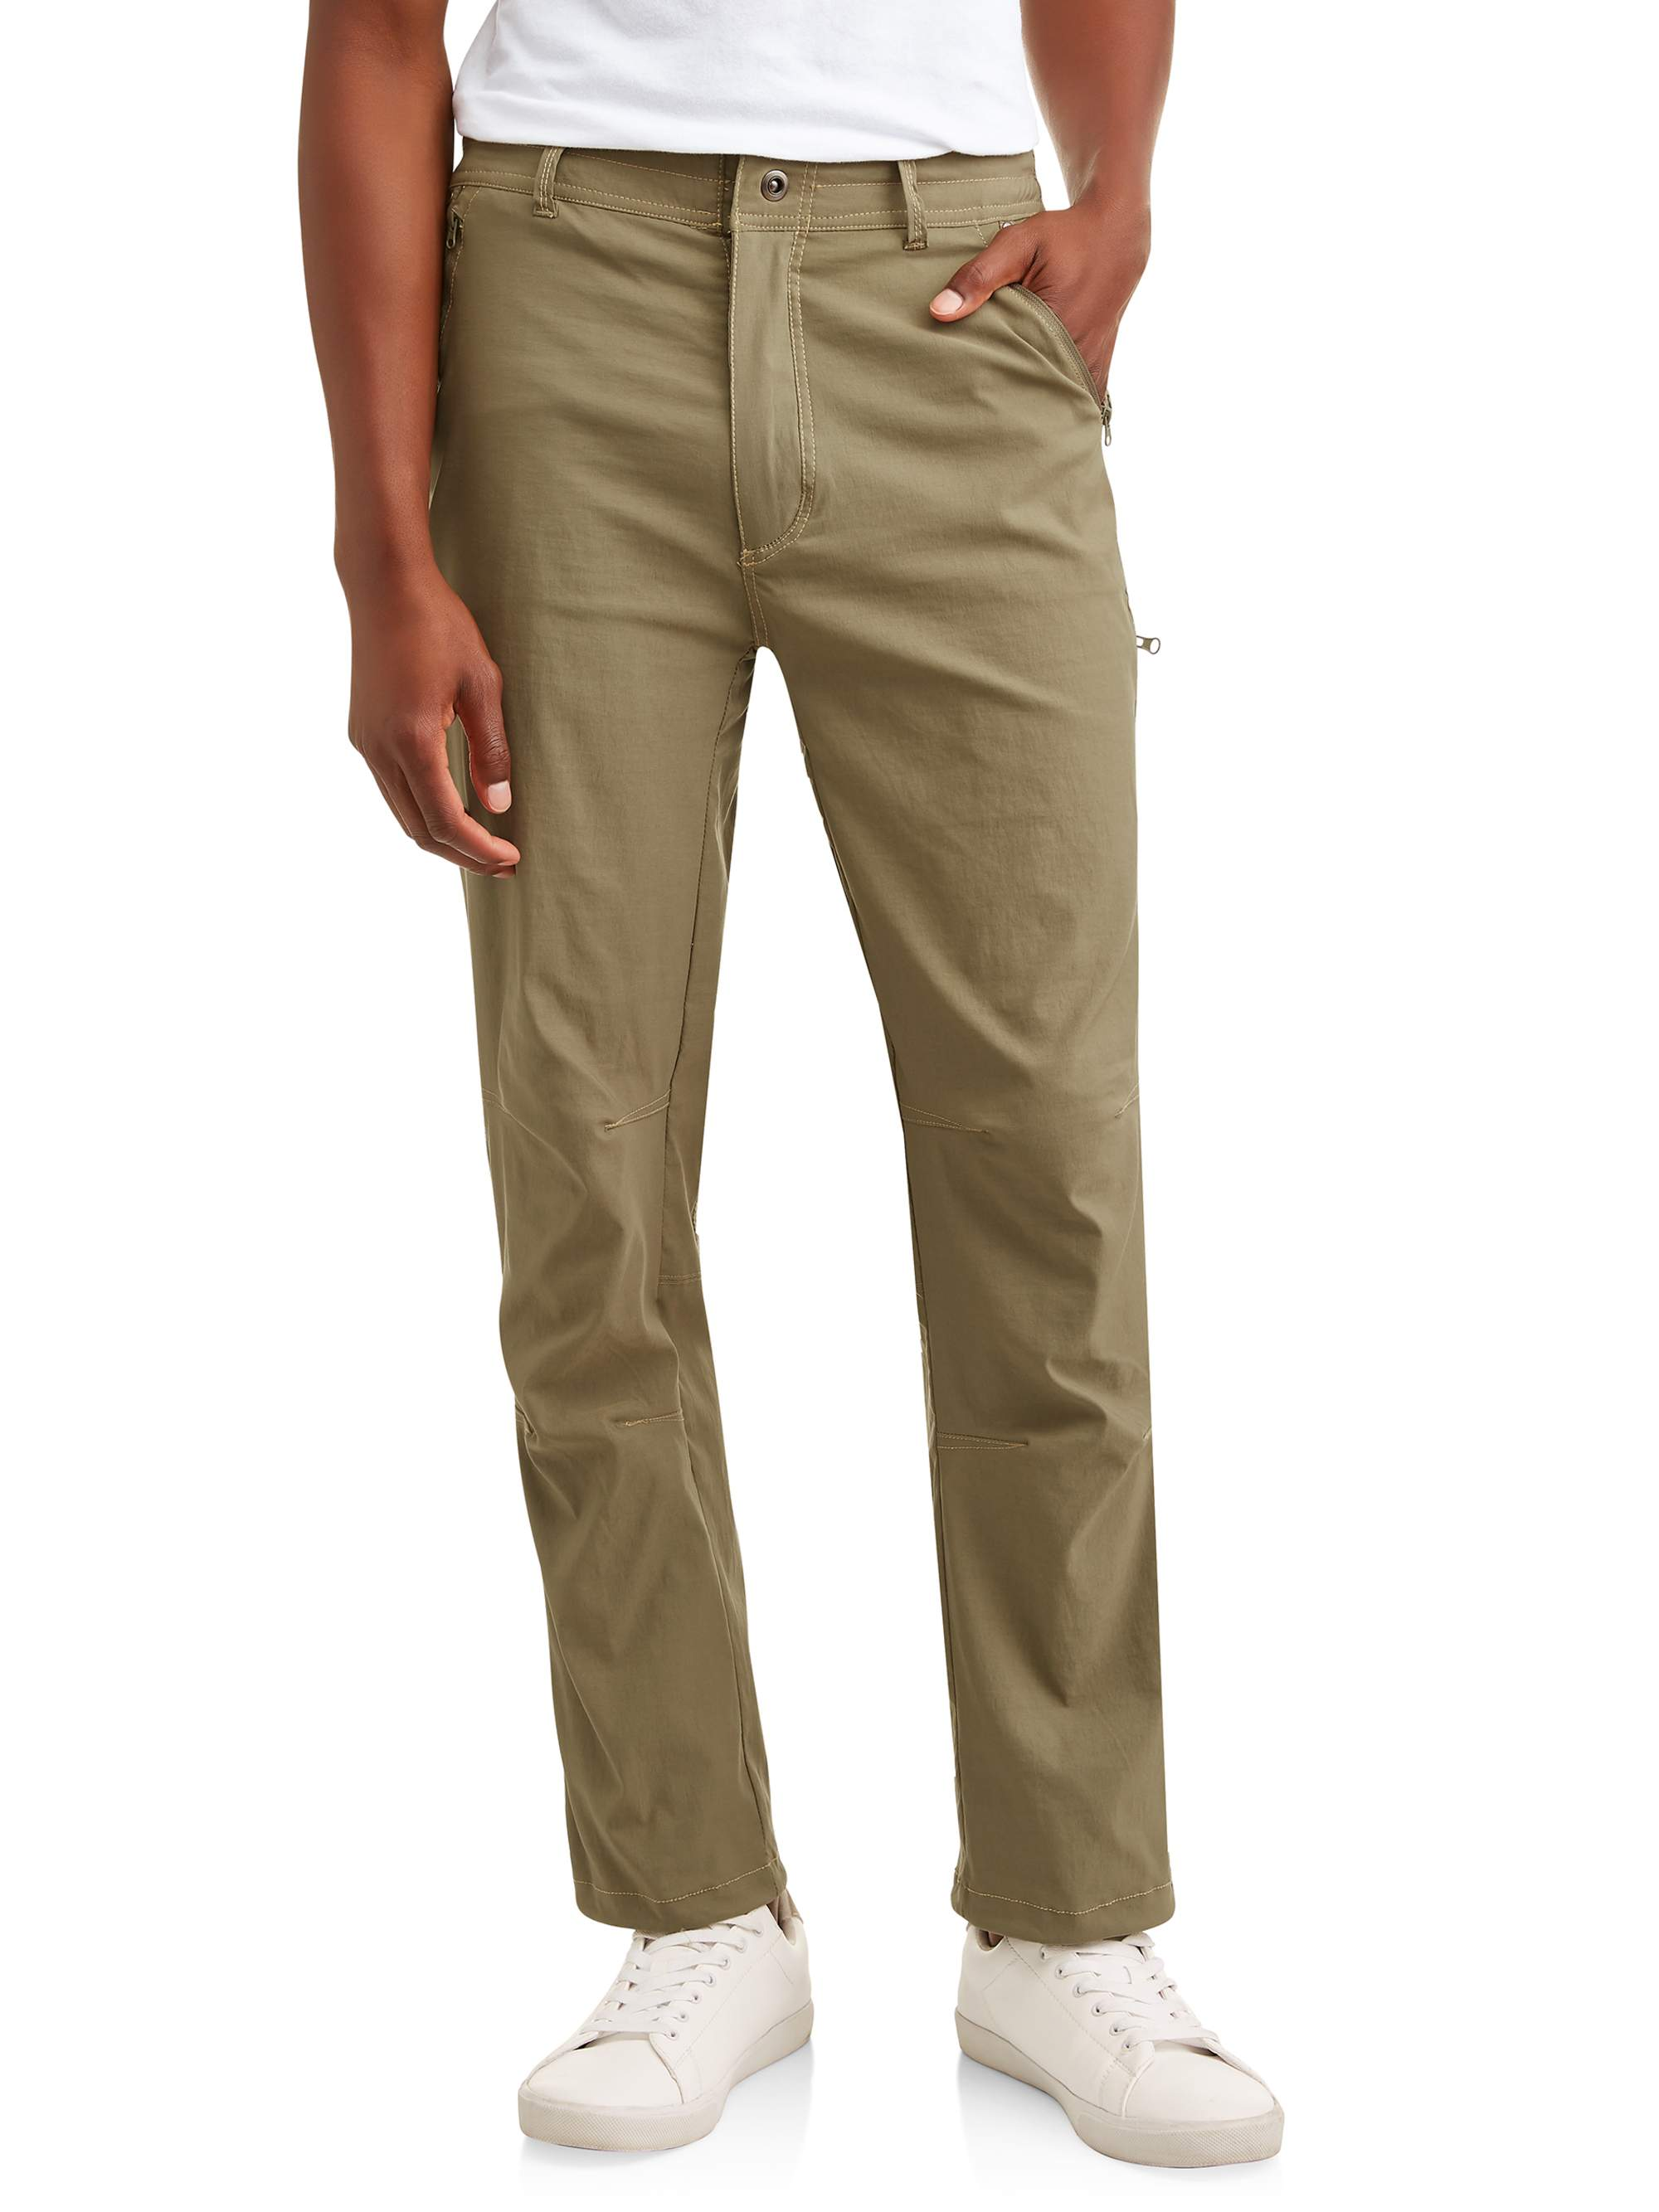 Men's Raid Outdoor Pants